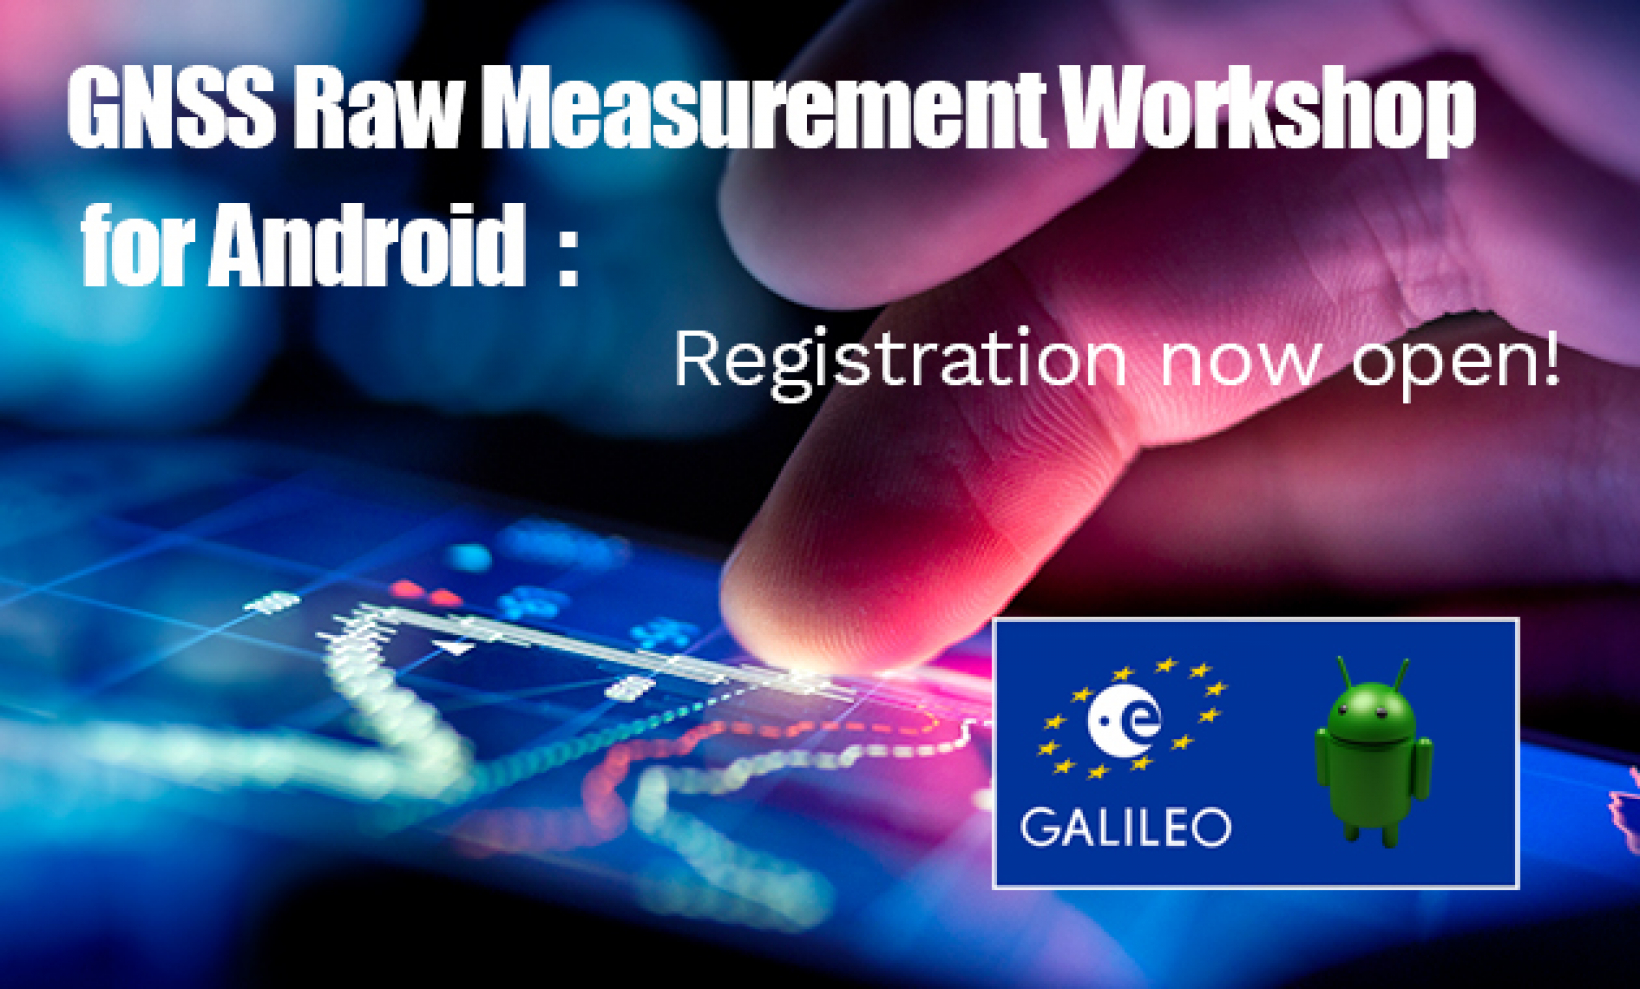 The Raw Measurements Task Force Workshop provides a forum to share experiences around raw measurements use.